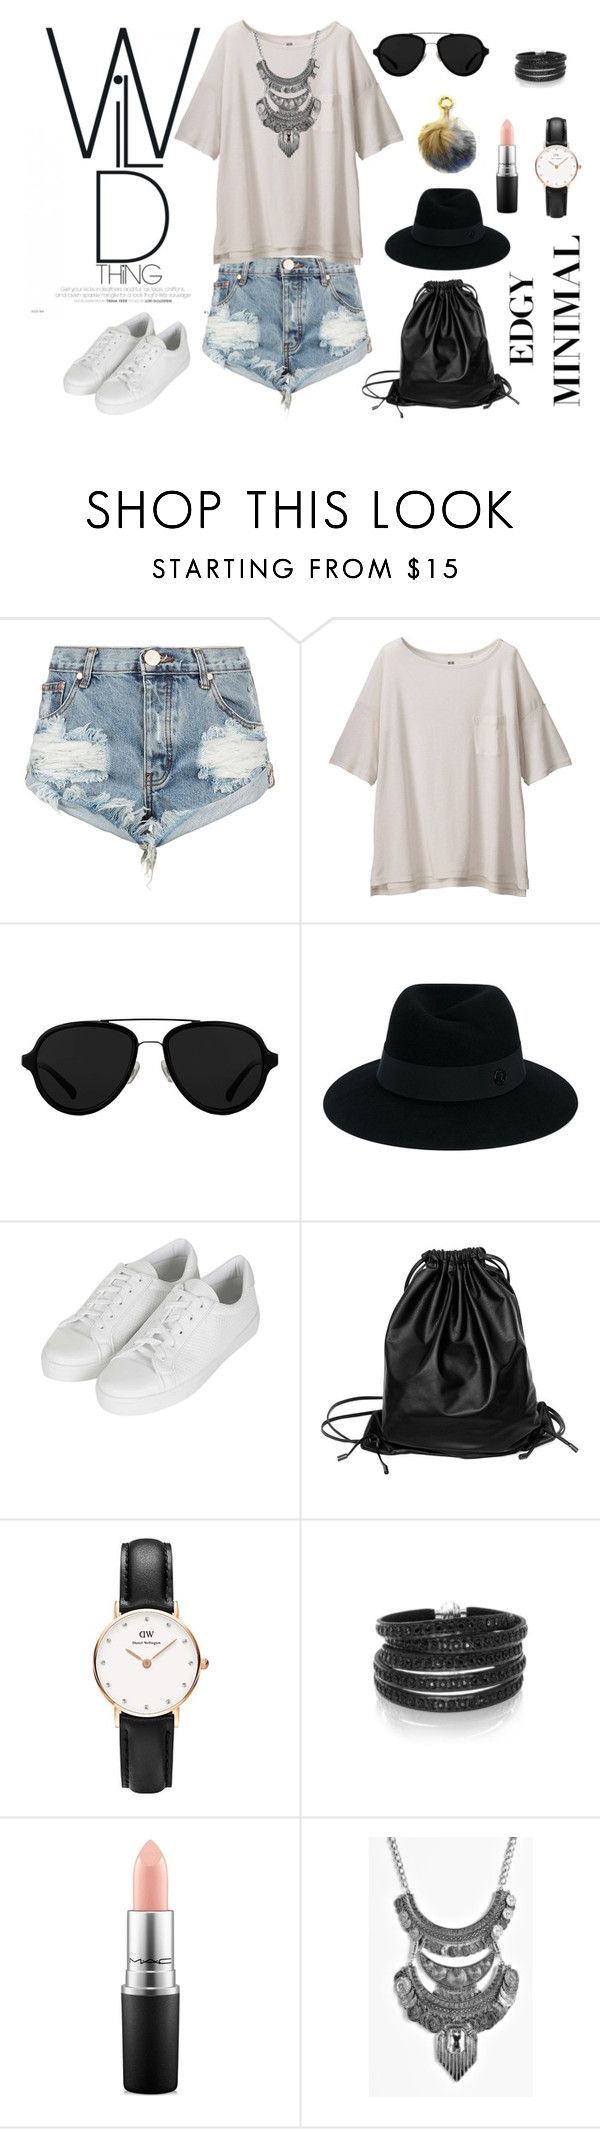 Wild thing by shop-styleloft on Polyvore featuring Uniqlo, One Teaspoon, Topshop, Xenab Lone, Sif Jakobs Jewellery, Daniel Wellington, Boohoo, Maison Michel, 3.1 Phillip Lim and MAC Cosmetics